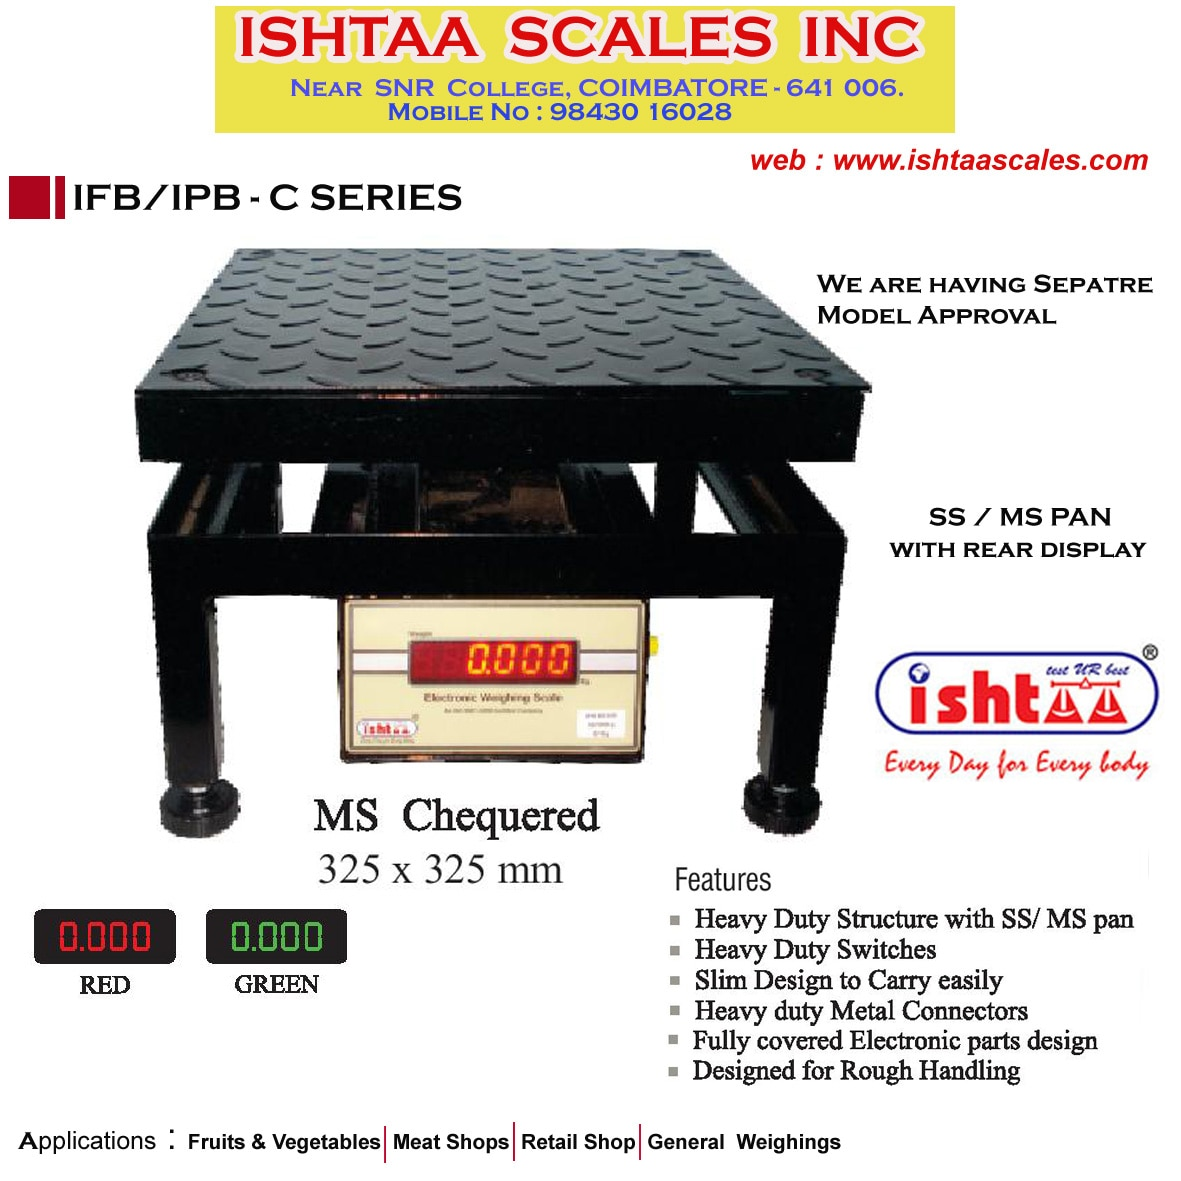 Ishtaa - CB Series  Capacity: 50 Kg, 50/100Kg & 100Kg,   Accuracy : 5g & 10g  Pan Size : 325 x 325 mm ( MS & SS Pan )  Body: METAL  Display: LED 0.56mm ( Red  & Green )    Features Having separate Model  approval for Chicken Scale Heavy Duty angle Structure with SS / MS Pan Bright LED display Rough Handling Rechargeable Battery Backup Auto Zero Tracking Heavy Duty Switches  #PoultryFarmsWeighing #ChickenWeighing  #MeatShopsWeighing #DairyWeighing #CommercialPurposesWeighing #VegetableWeighing #FruitsWeighing #FieldScaleWeighing #RetailShopWeighing #AgriculturalWeighing #FarmersWeighing #WholesalersWeighing #GroceryWeighing